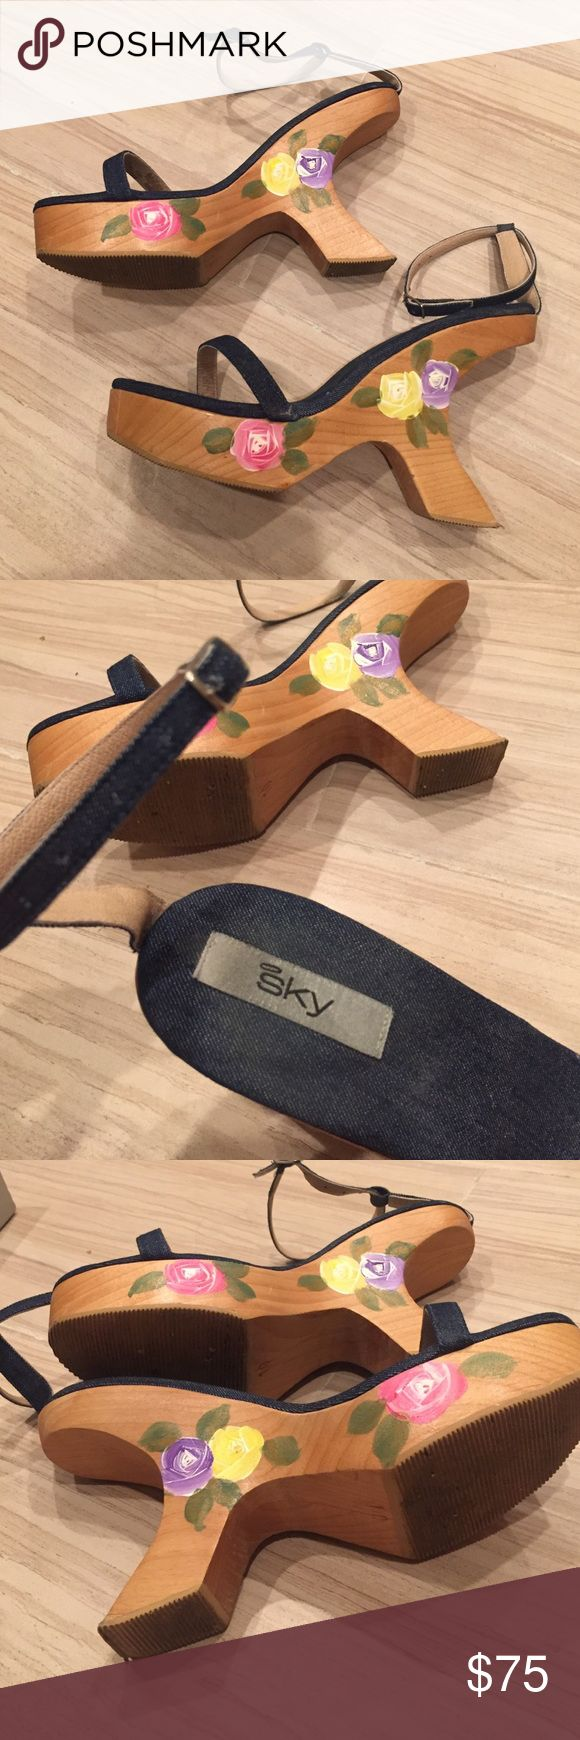 Amazing Sky denim heels! Sky. Hand painted wooden heels. Denim with ankle straps. Size 10. Excellent condition Sky Shoes Heels